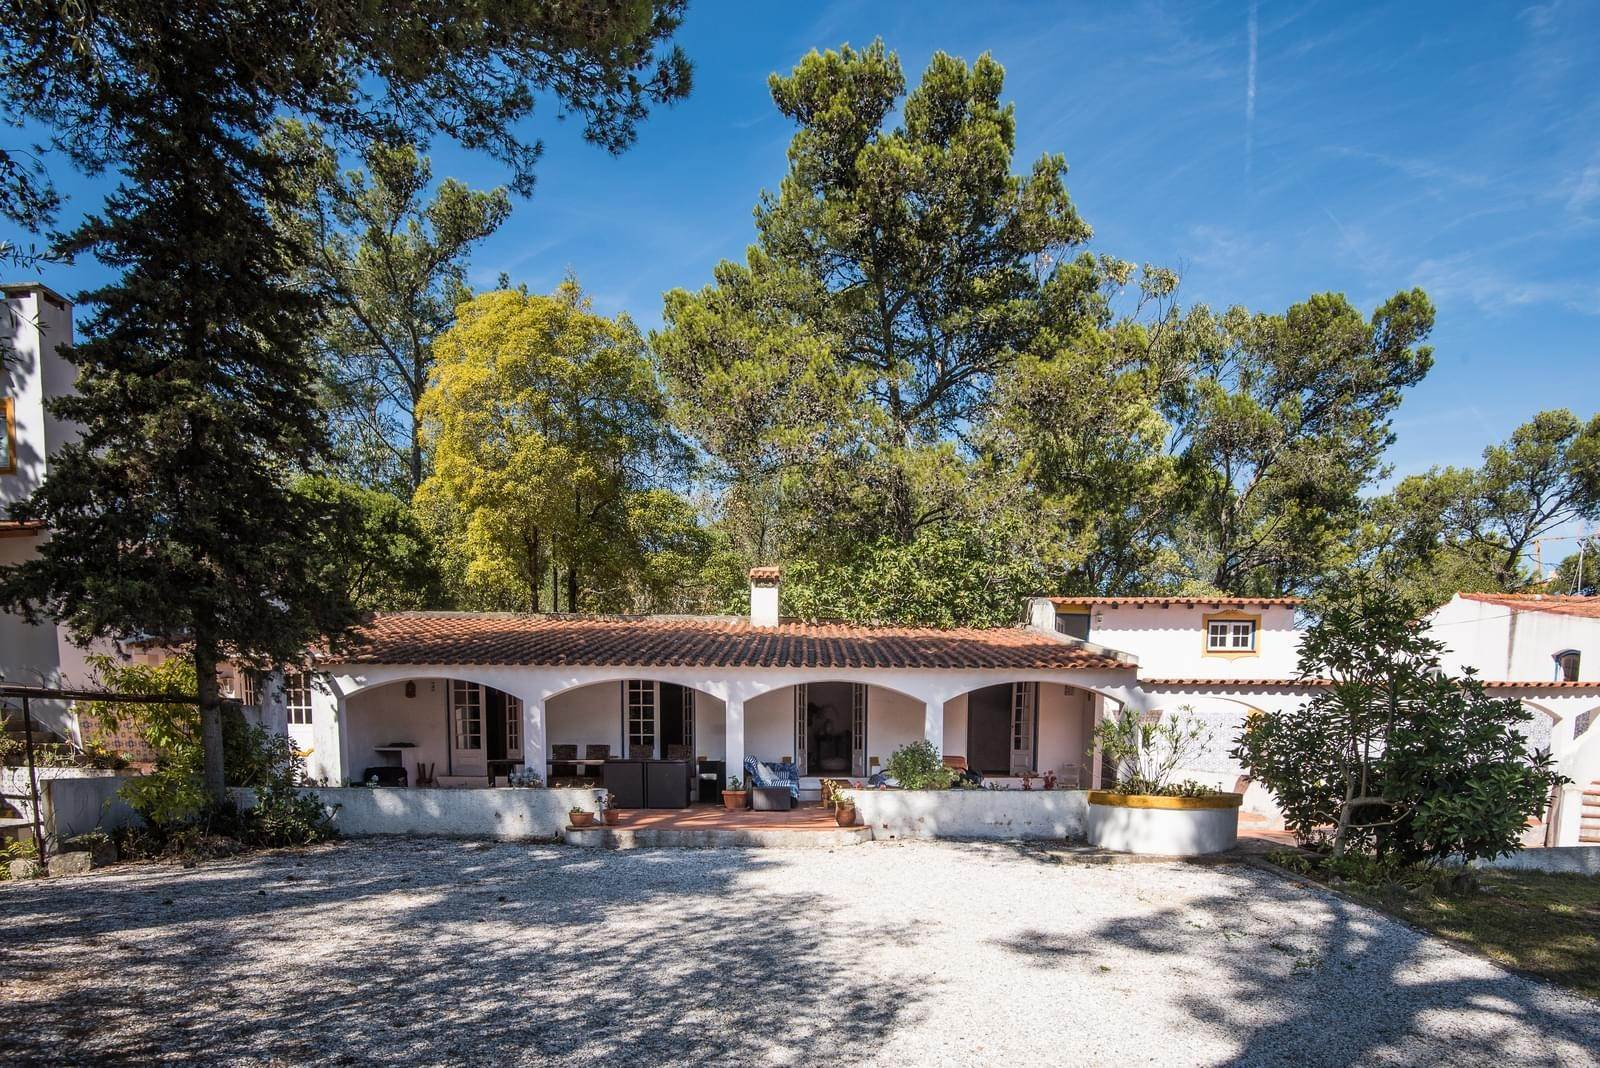 別墅 / 联排别墅 為 出售 在 Unique property, located next to Quinta da Marinha, a quiet area.The property comprises six small villas, with deep refu... Cascais, 葡萄牙